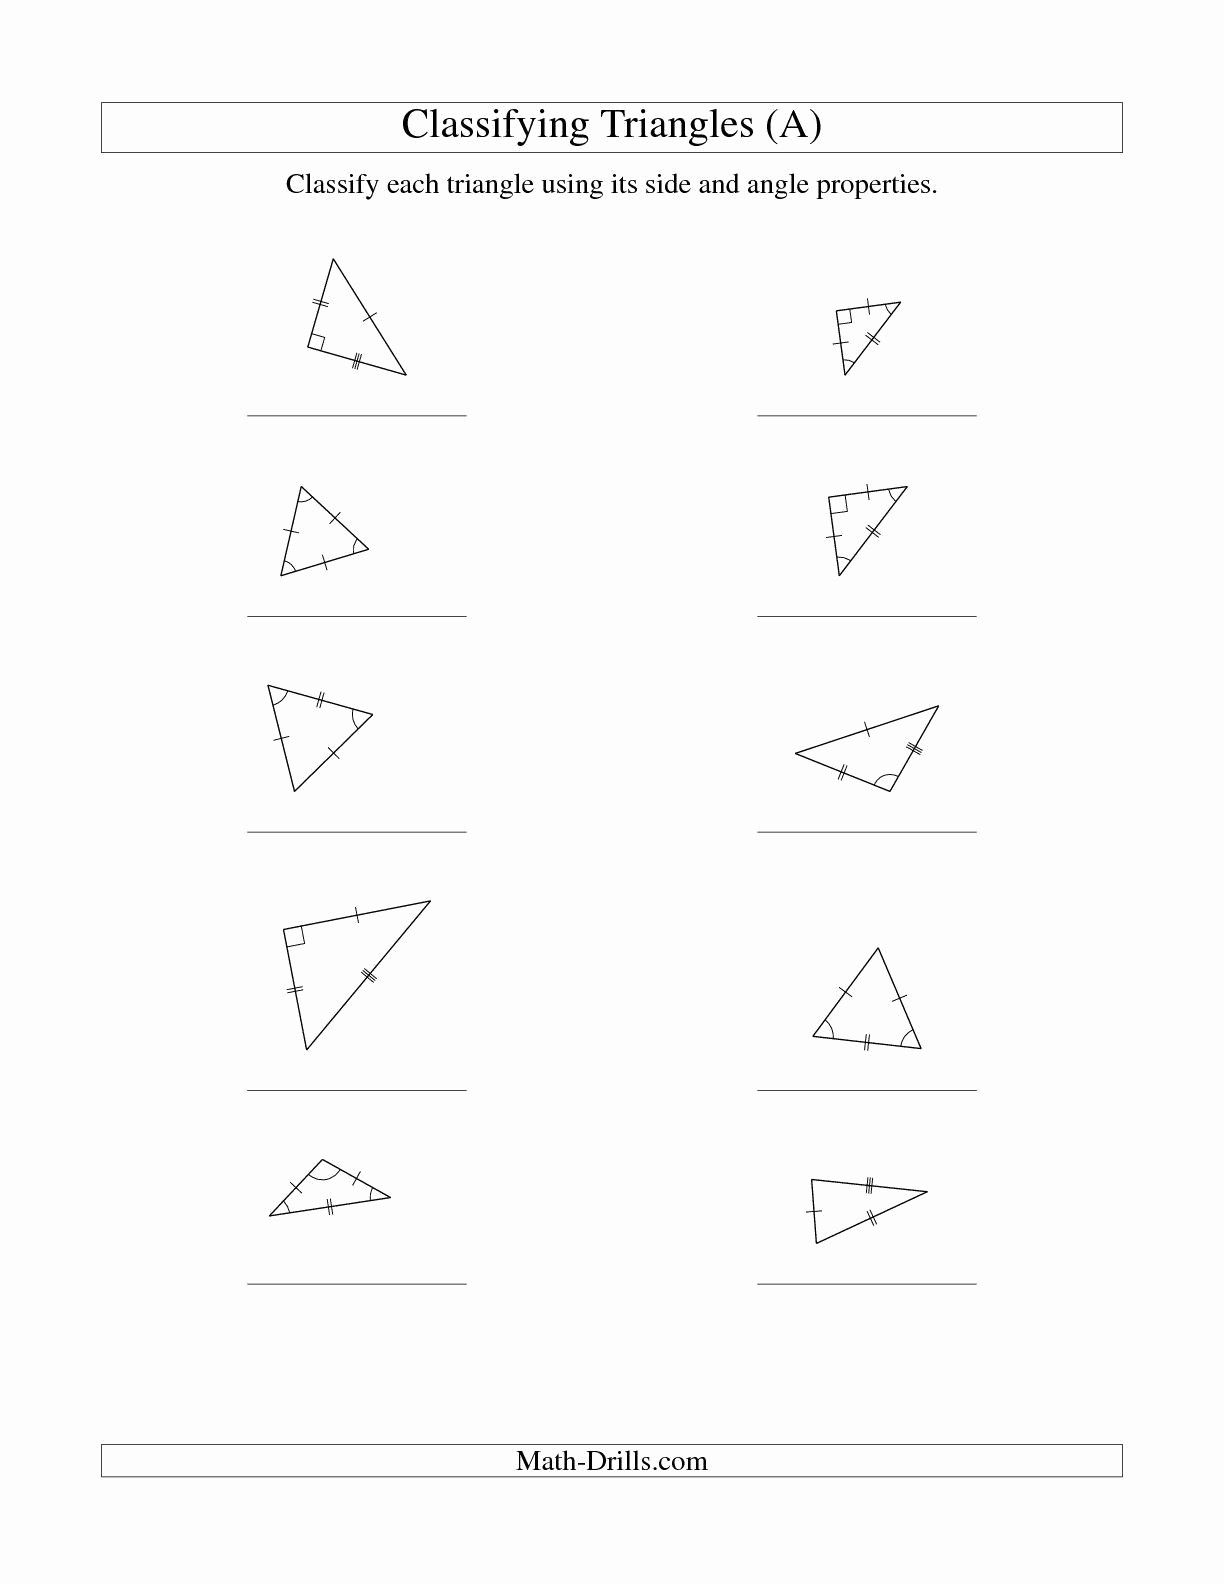 Worksheet Triangle Sum And Exterior Angle Theorem Key